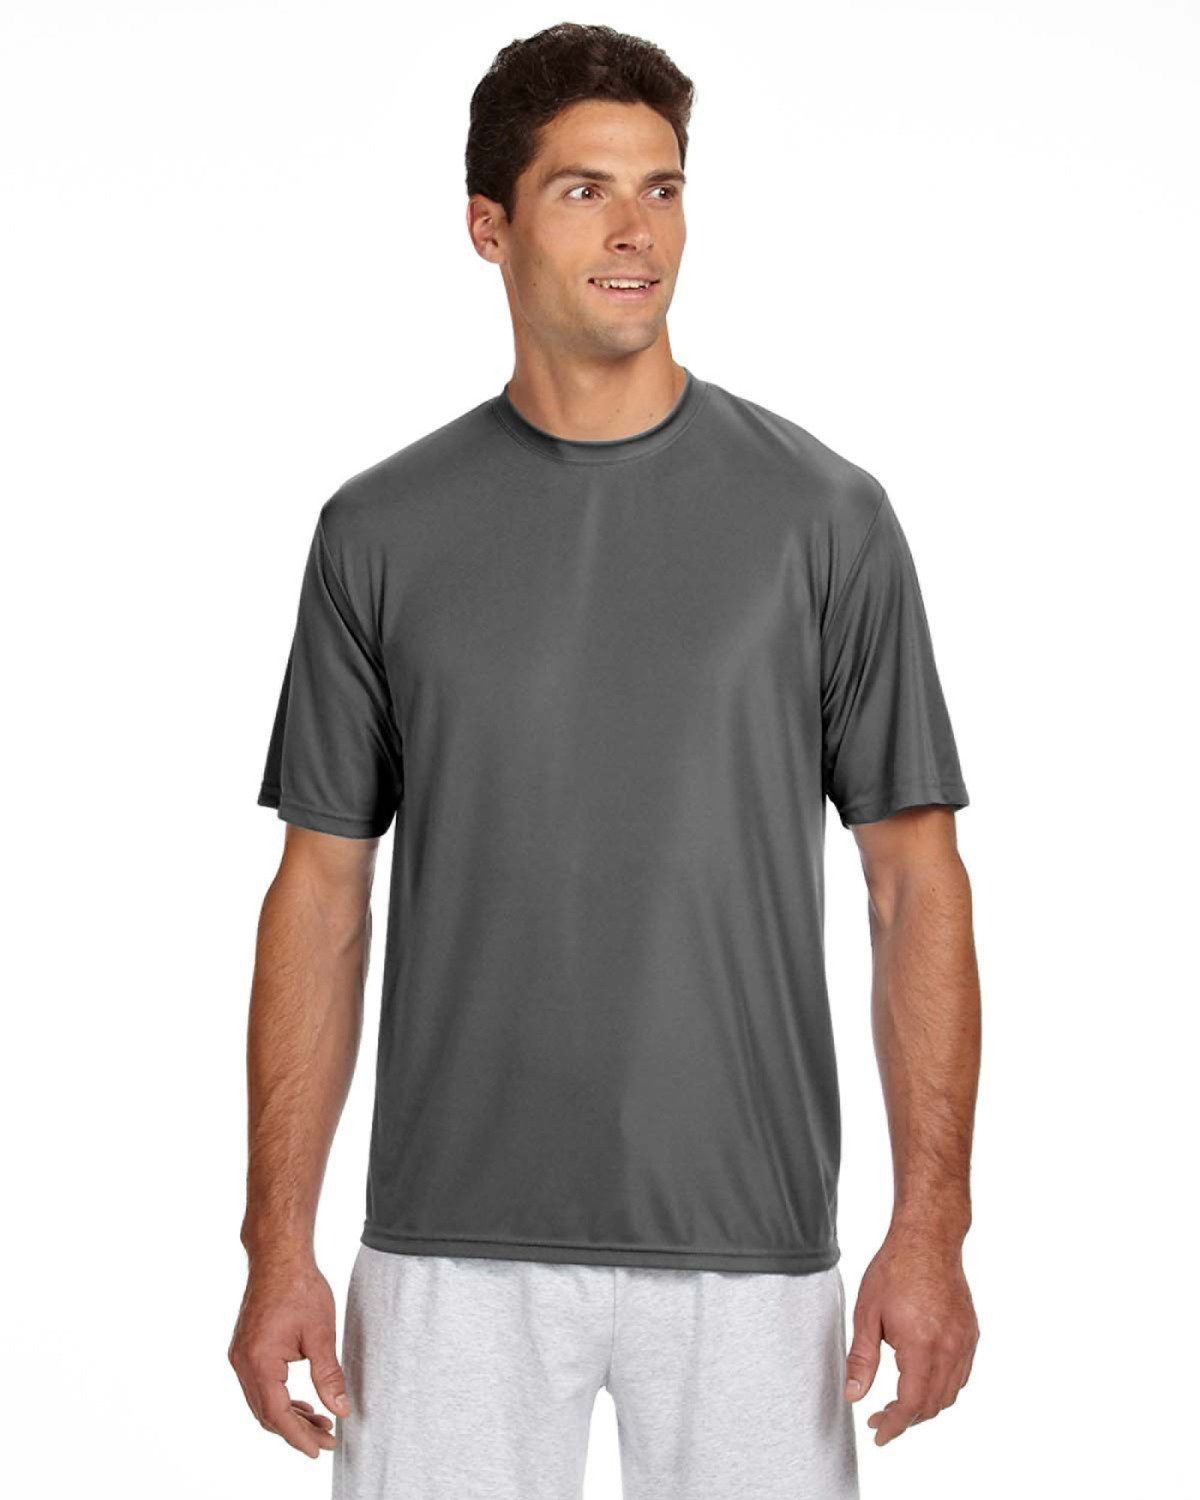 A4 Men's Cooling Performance T-Shirt GRAPHITE